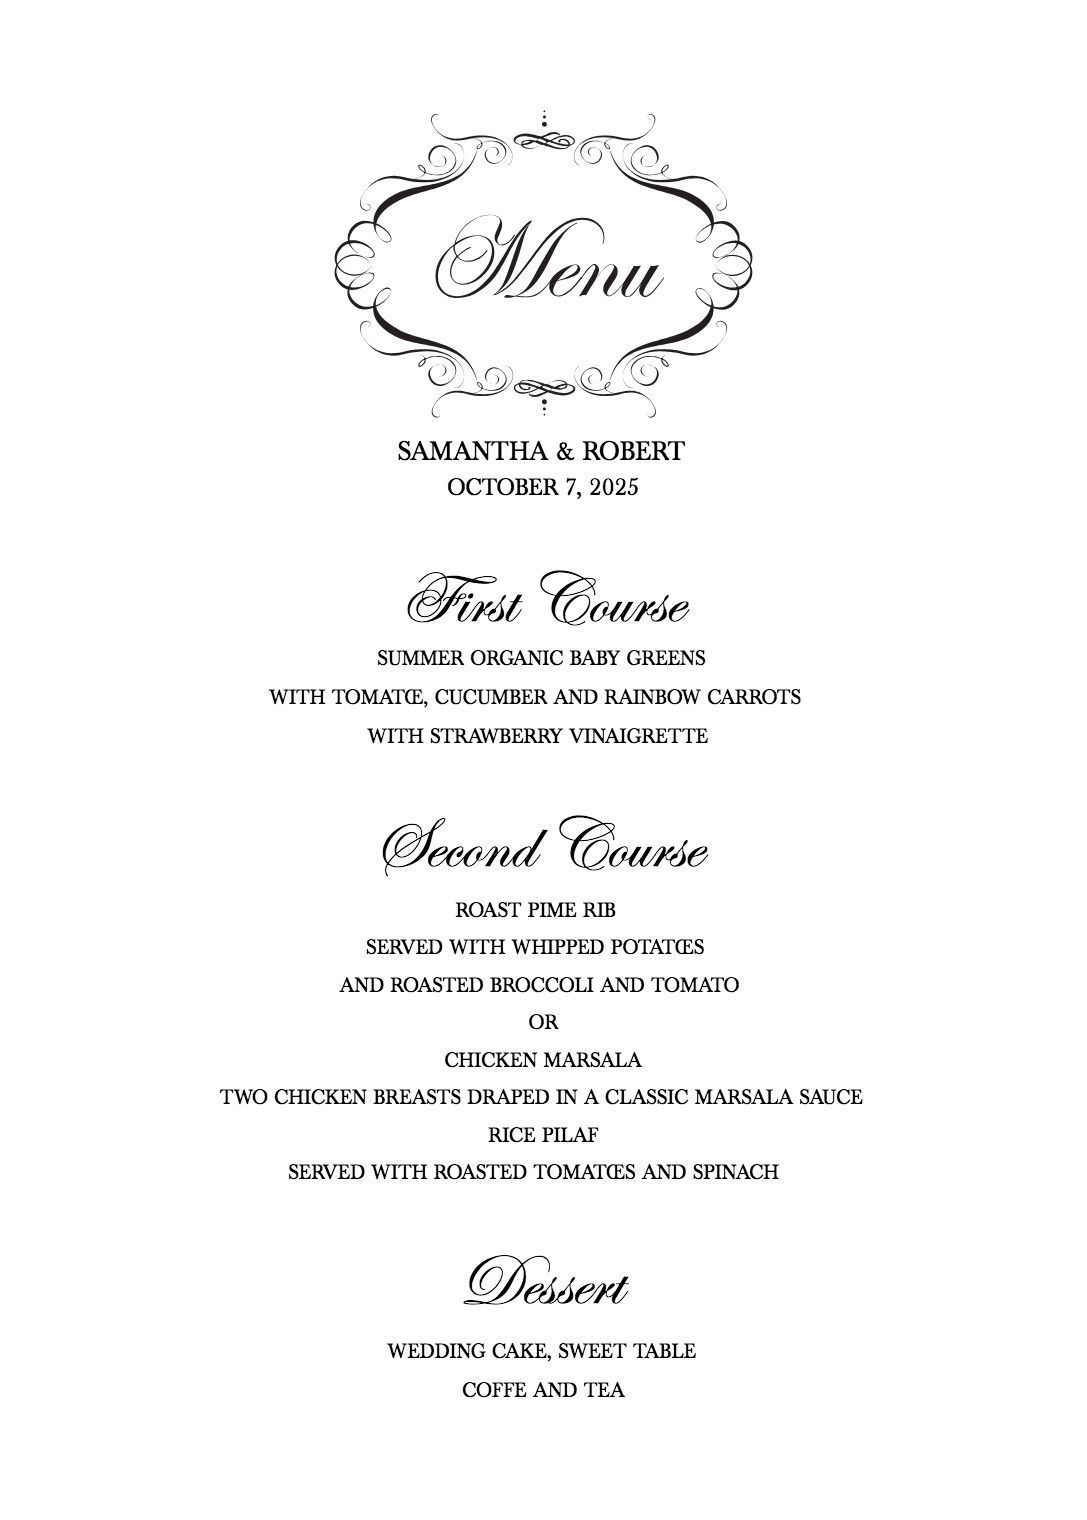 Download Free, Stylish Templates for Your Wedding Menu #weddingmenutemplate Download a Free Wedding Menu Template #weddingmenutemplate